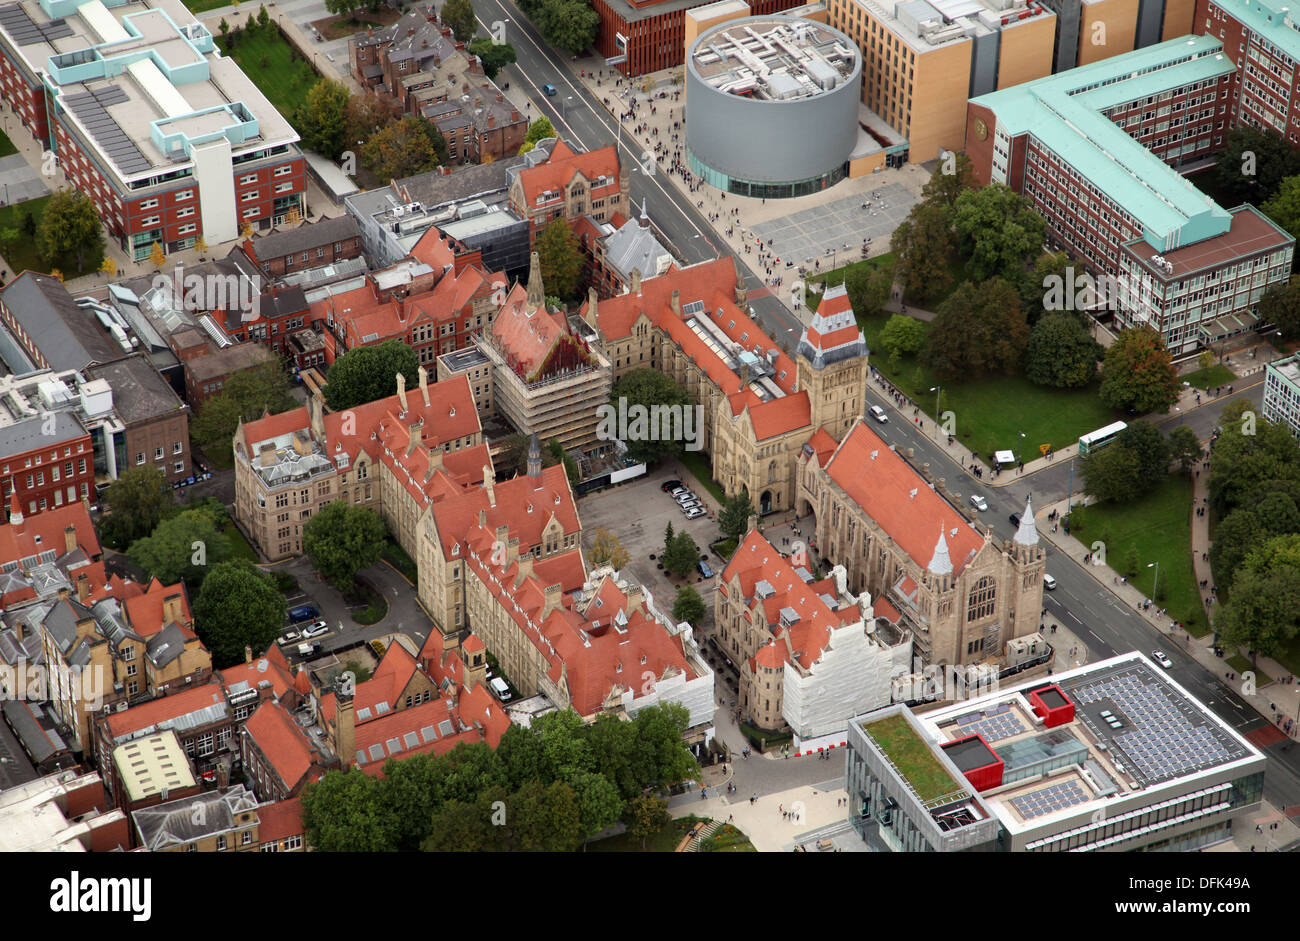 aerial view of Manchester University - Stock Image